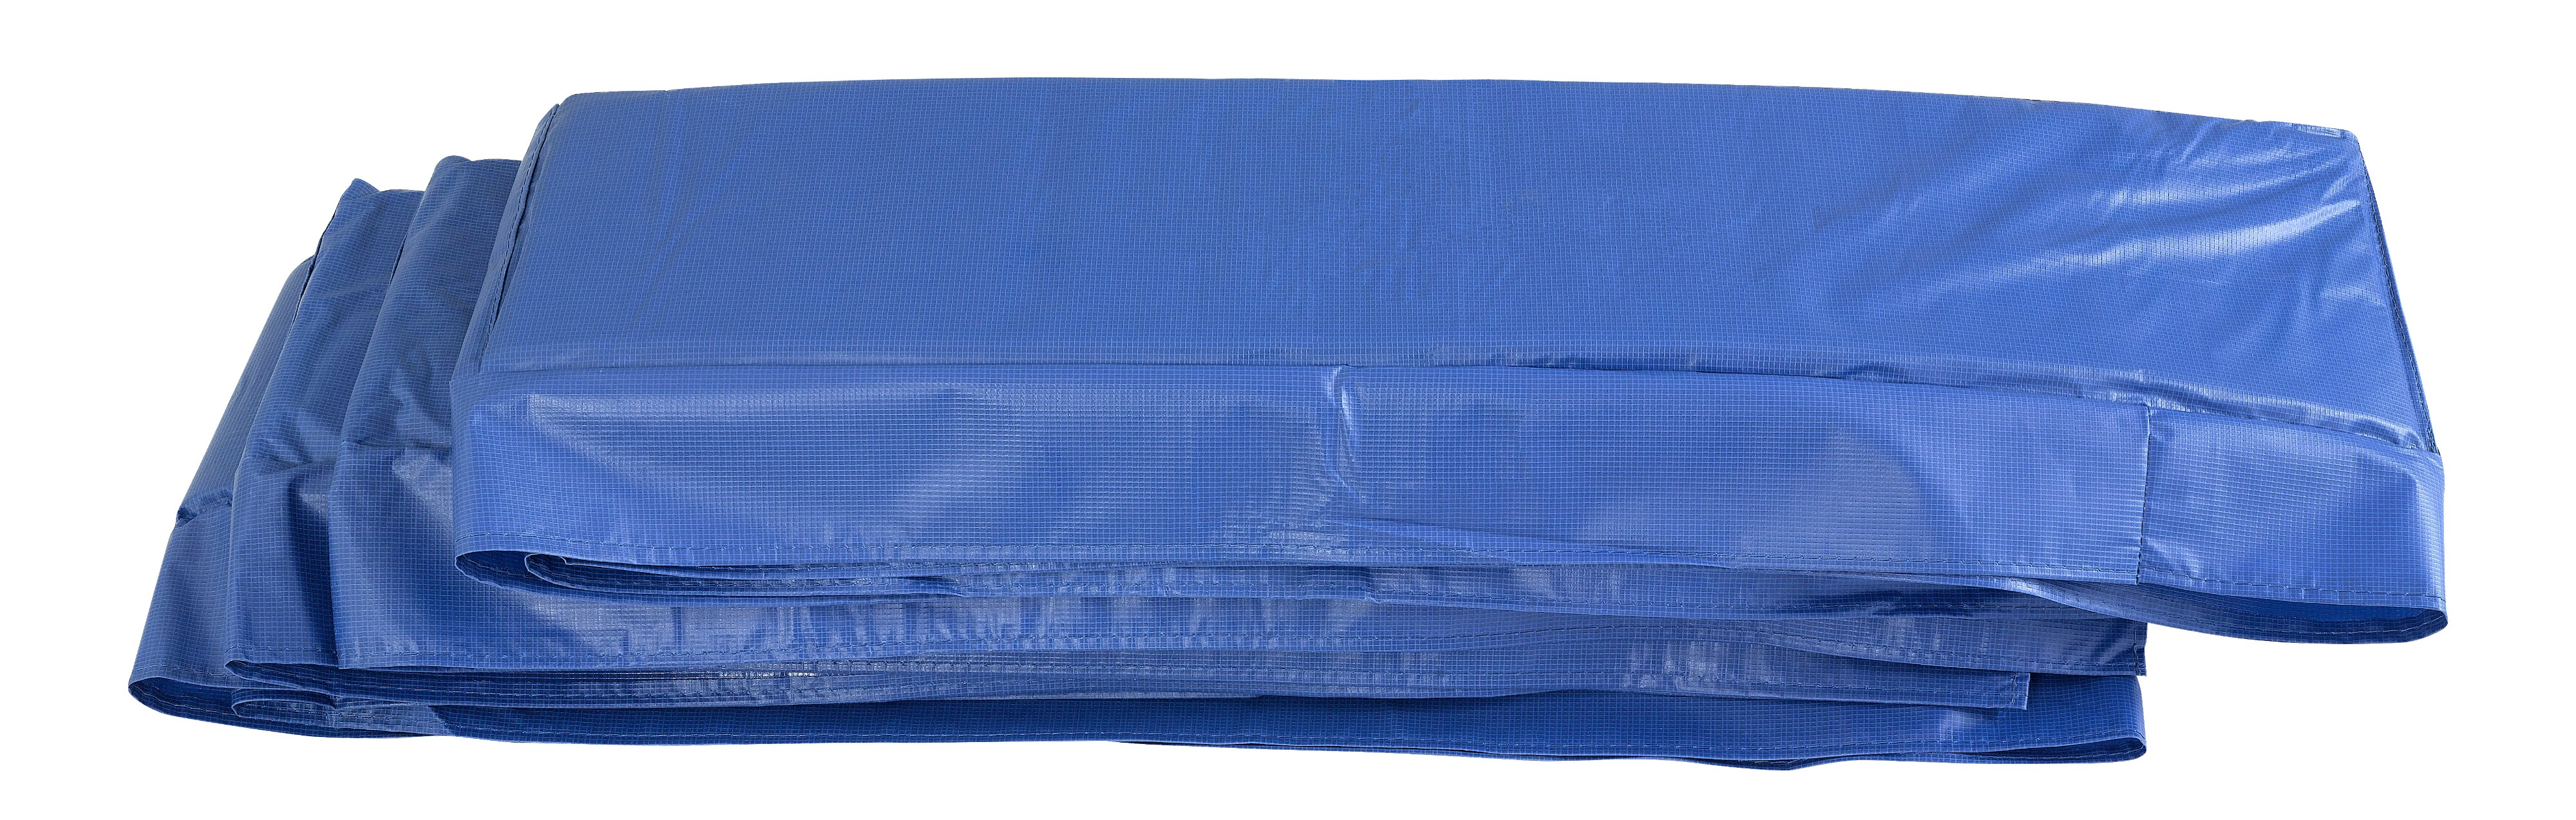 Super Trampoline Replacement Safety Pad (Spring Cover) for 9 x 15 FT. Rectangular Frames - Blue